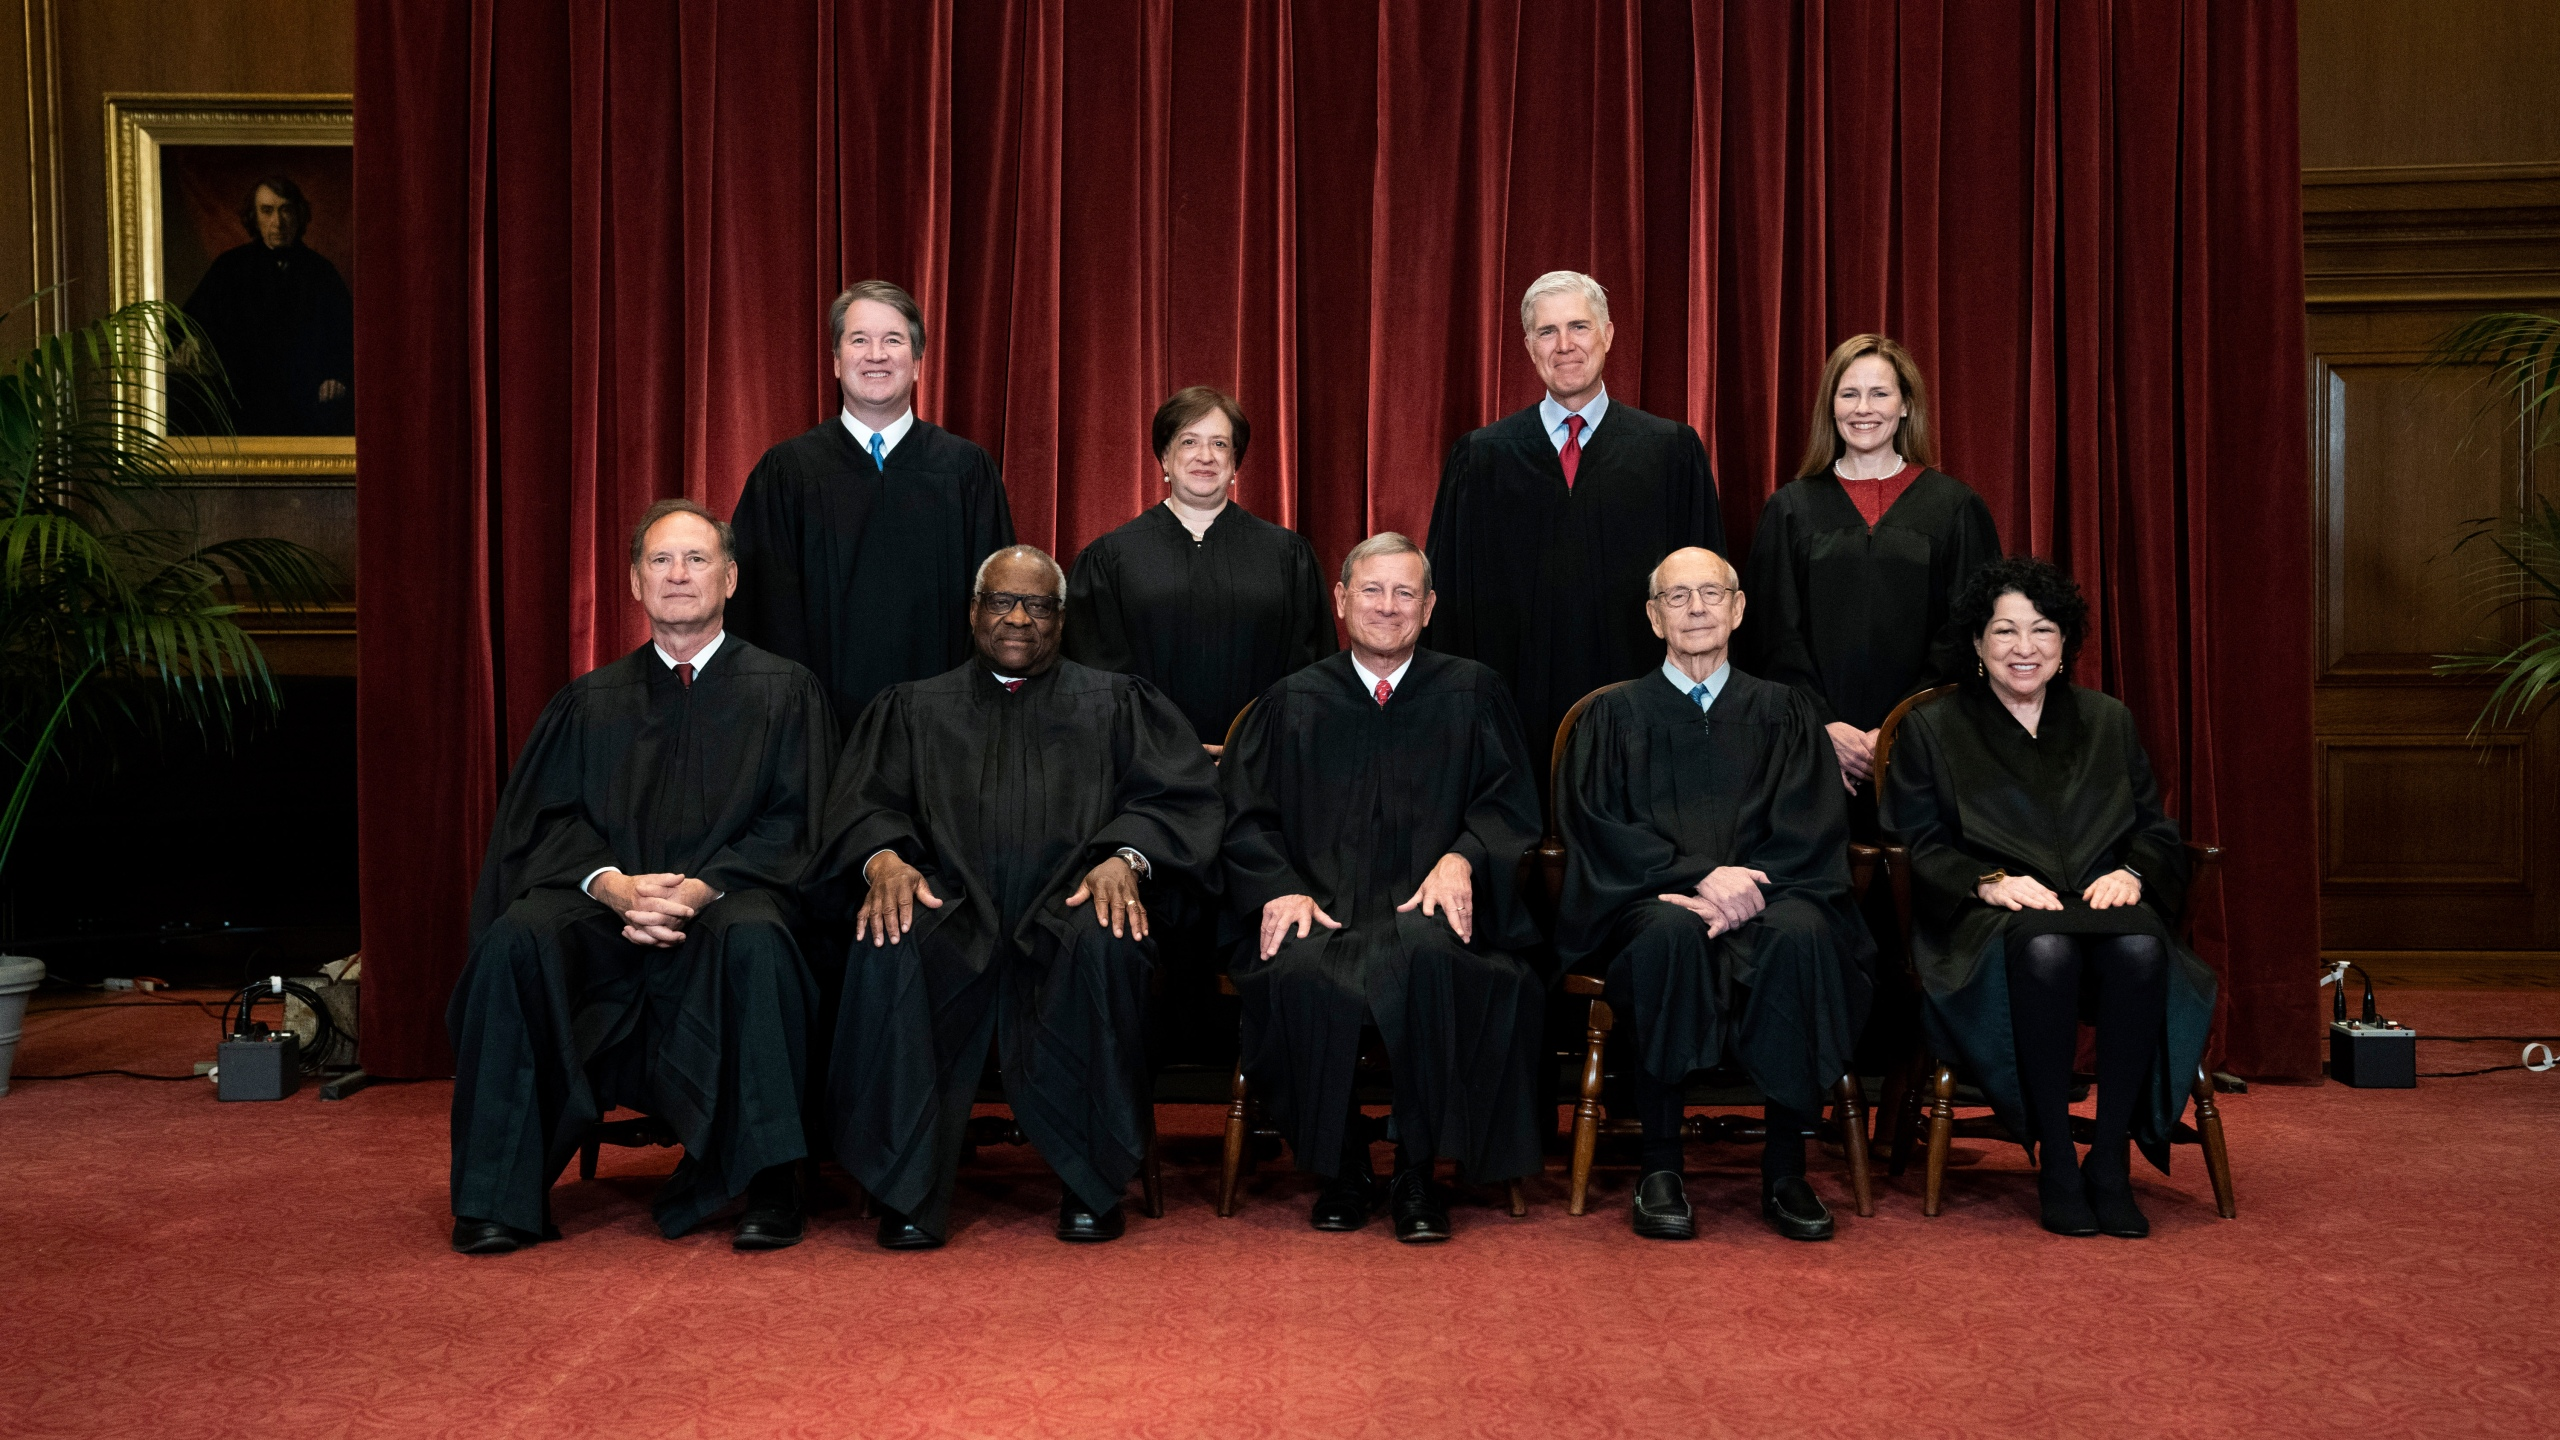 In this April 23, 2021, file photo members of the Supreme Court pose for a group photo at the Supreme Court in Washington. Seated from left are Associate Justice Samuel Alito, Associate Justice Clarence Thomas, Chief Justice John Roberts, Associate Justice Stephen Breyer and Associate Justice Sonia Sotomayor, Standing from left are Associate Justice Brett Kavanaugh, Associate Justice Elena Kagan, Associate Justice Neil Gorsuch and Associate Justice Amy Coney Barrett. (Erin Schaff/The New York Times via AP, Pool)